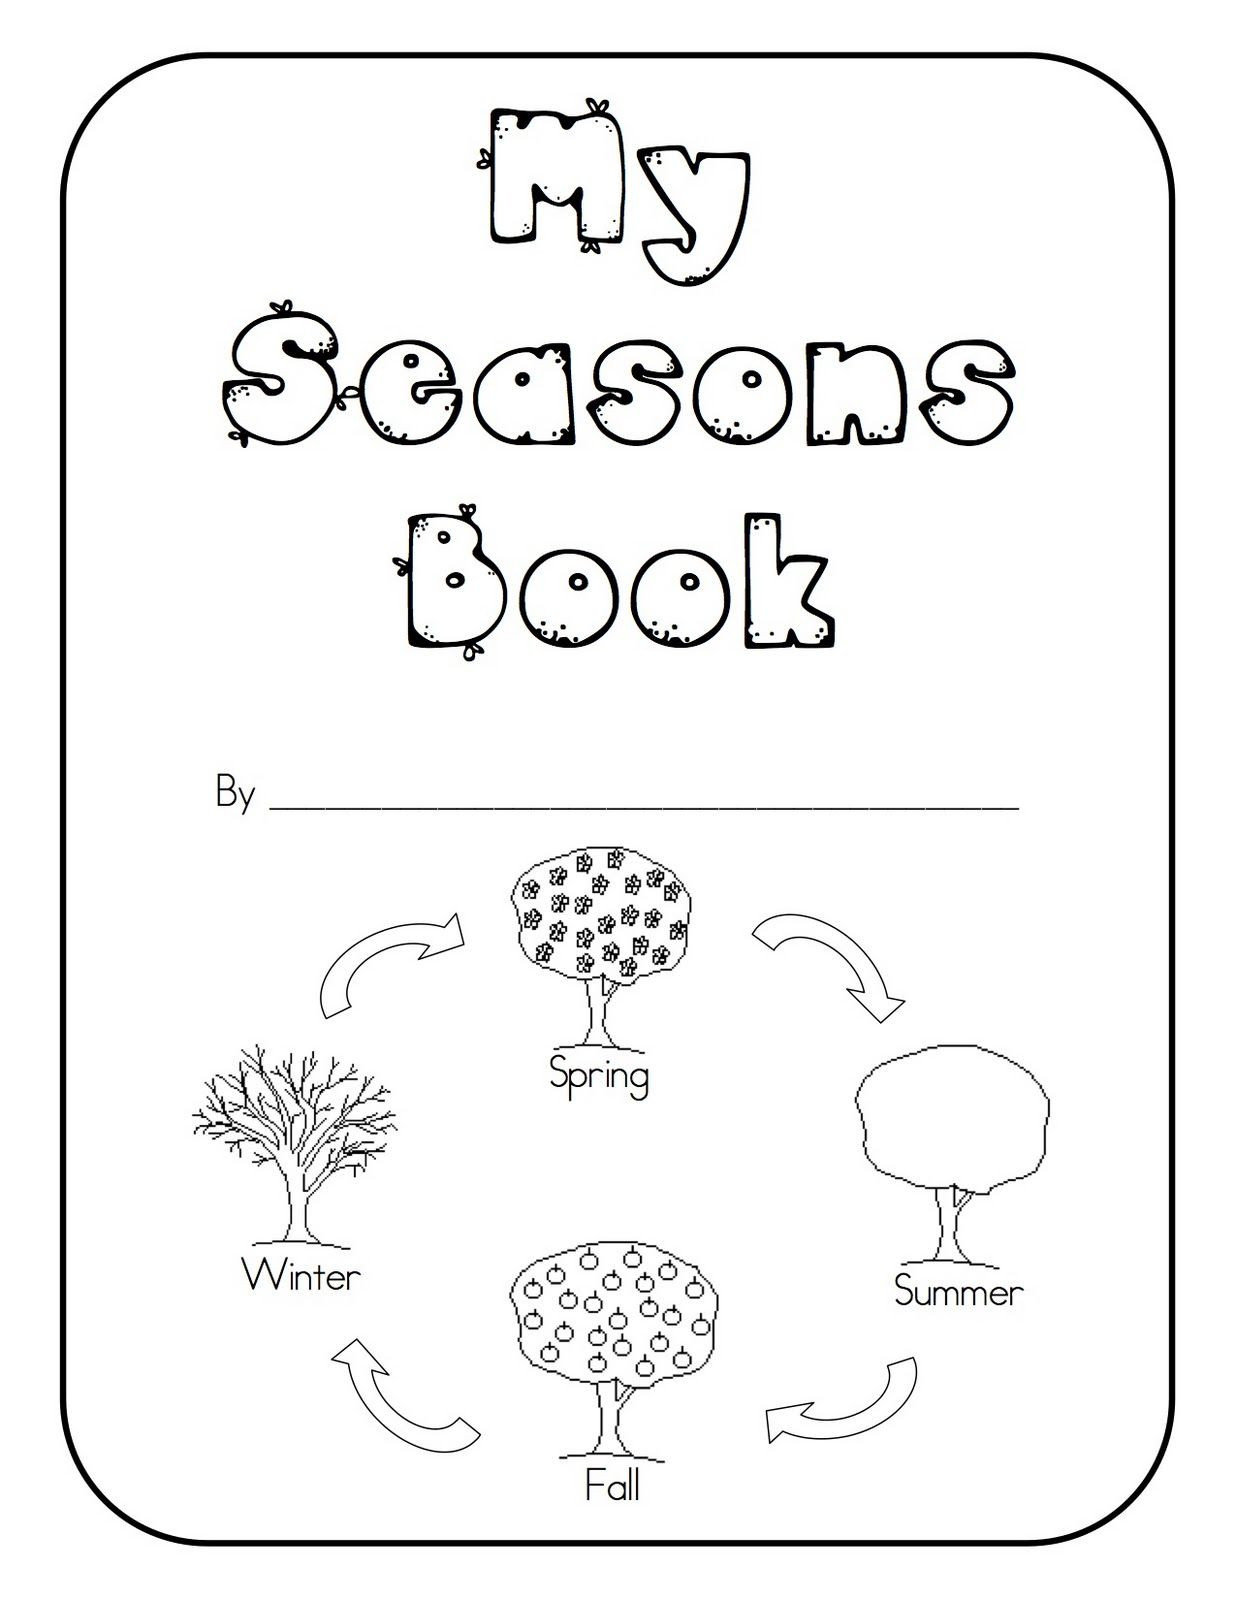 Seasons Worksheets for First Grade thermometer Worksheets 1st Grade Printable and Pay It